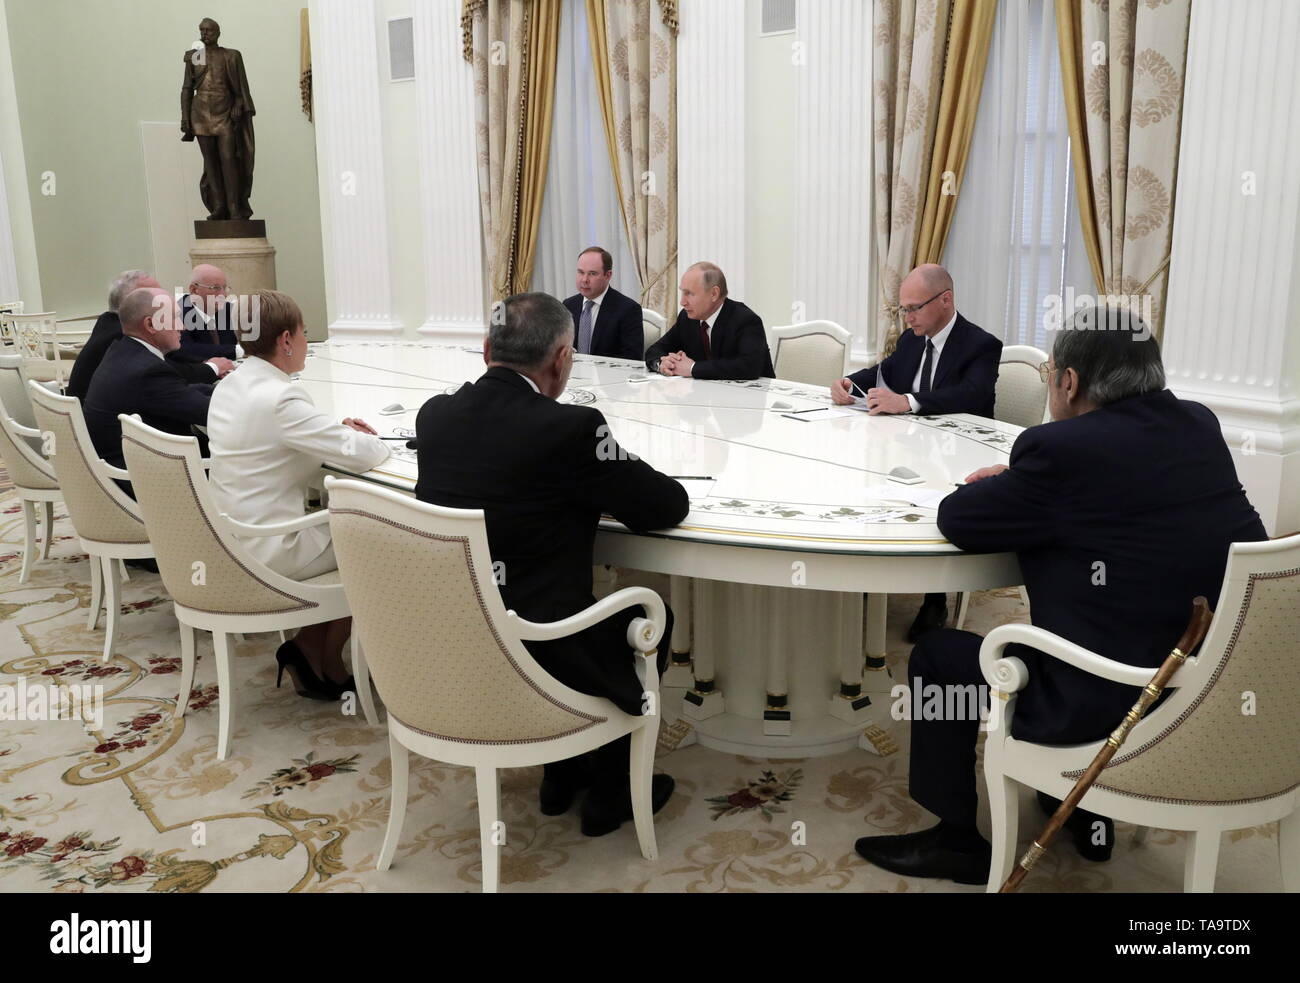 Moscow, Russia. 23rd May, 2019. MOSCOW, RUSSIA - MAY 23, 2019: Russia's President Vladimir Putin (C) during a meeting with former heads of Russian regions, at the Moscow Kremlin. Mikhail Metzel/TASS Credit: ITAR-TASS News Agency/Alamy Live News - Stock Image